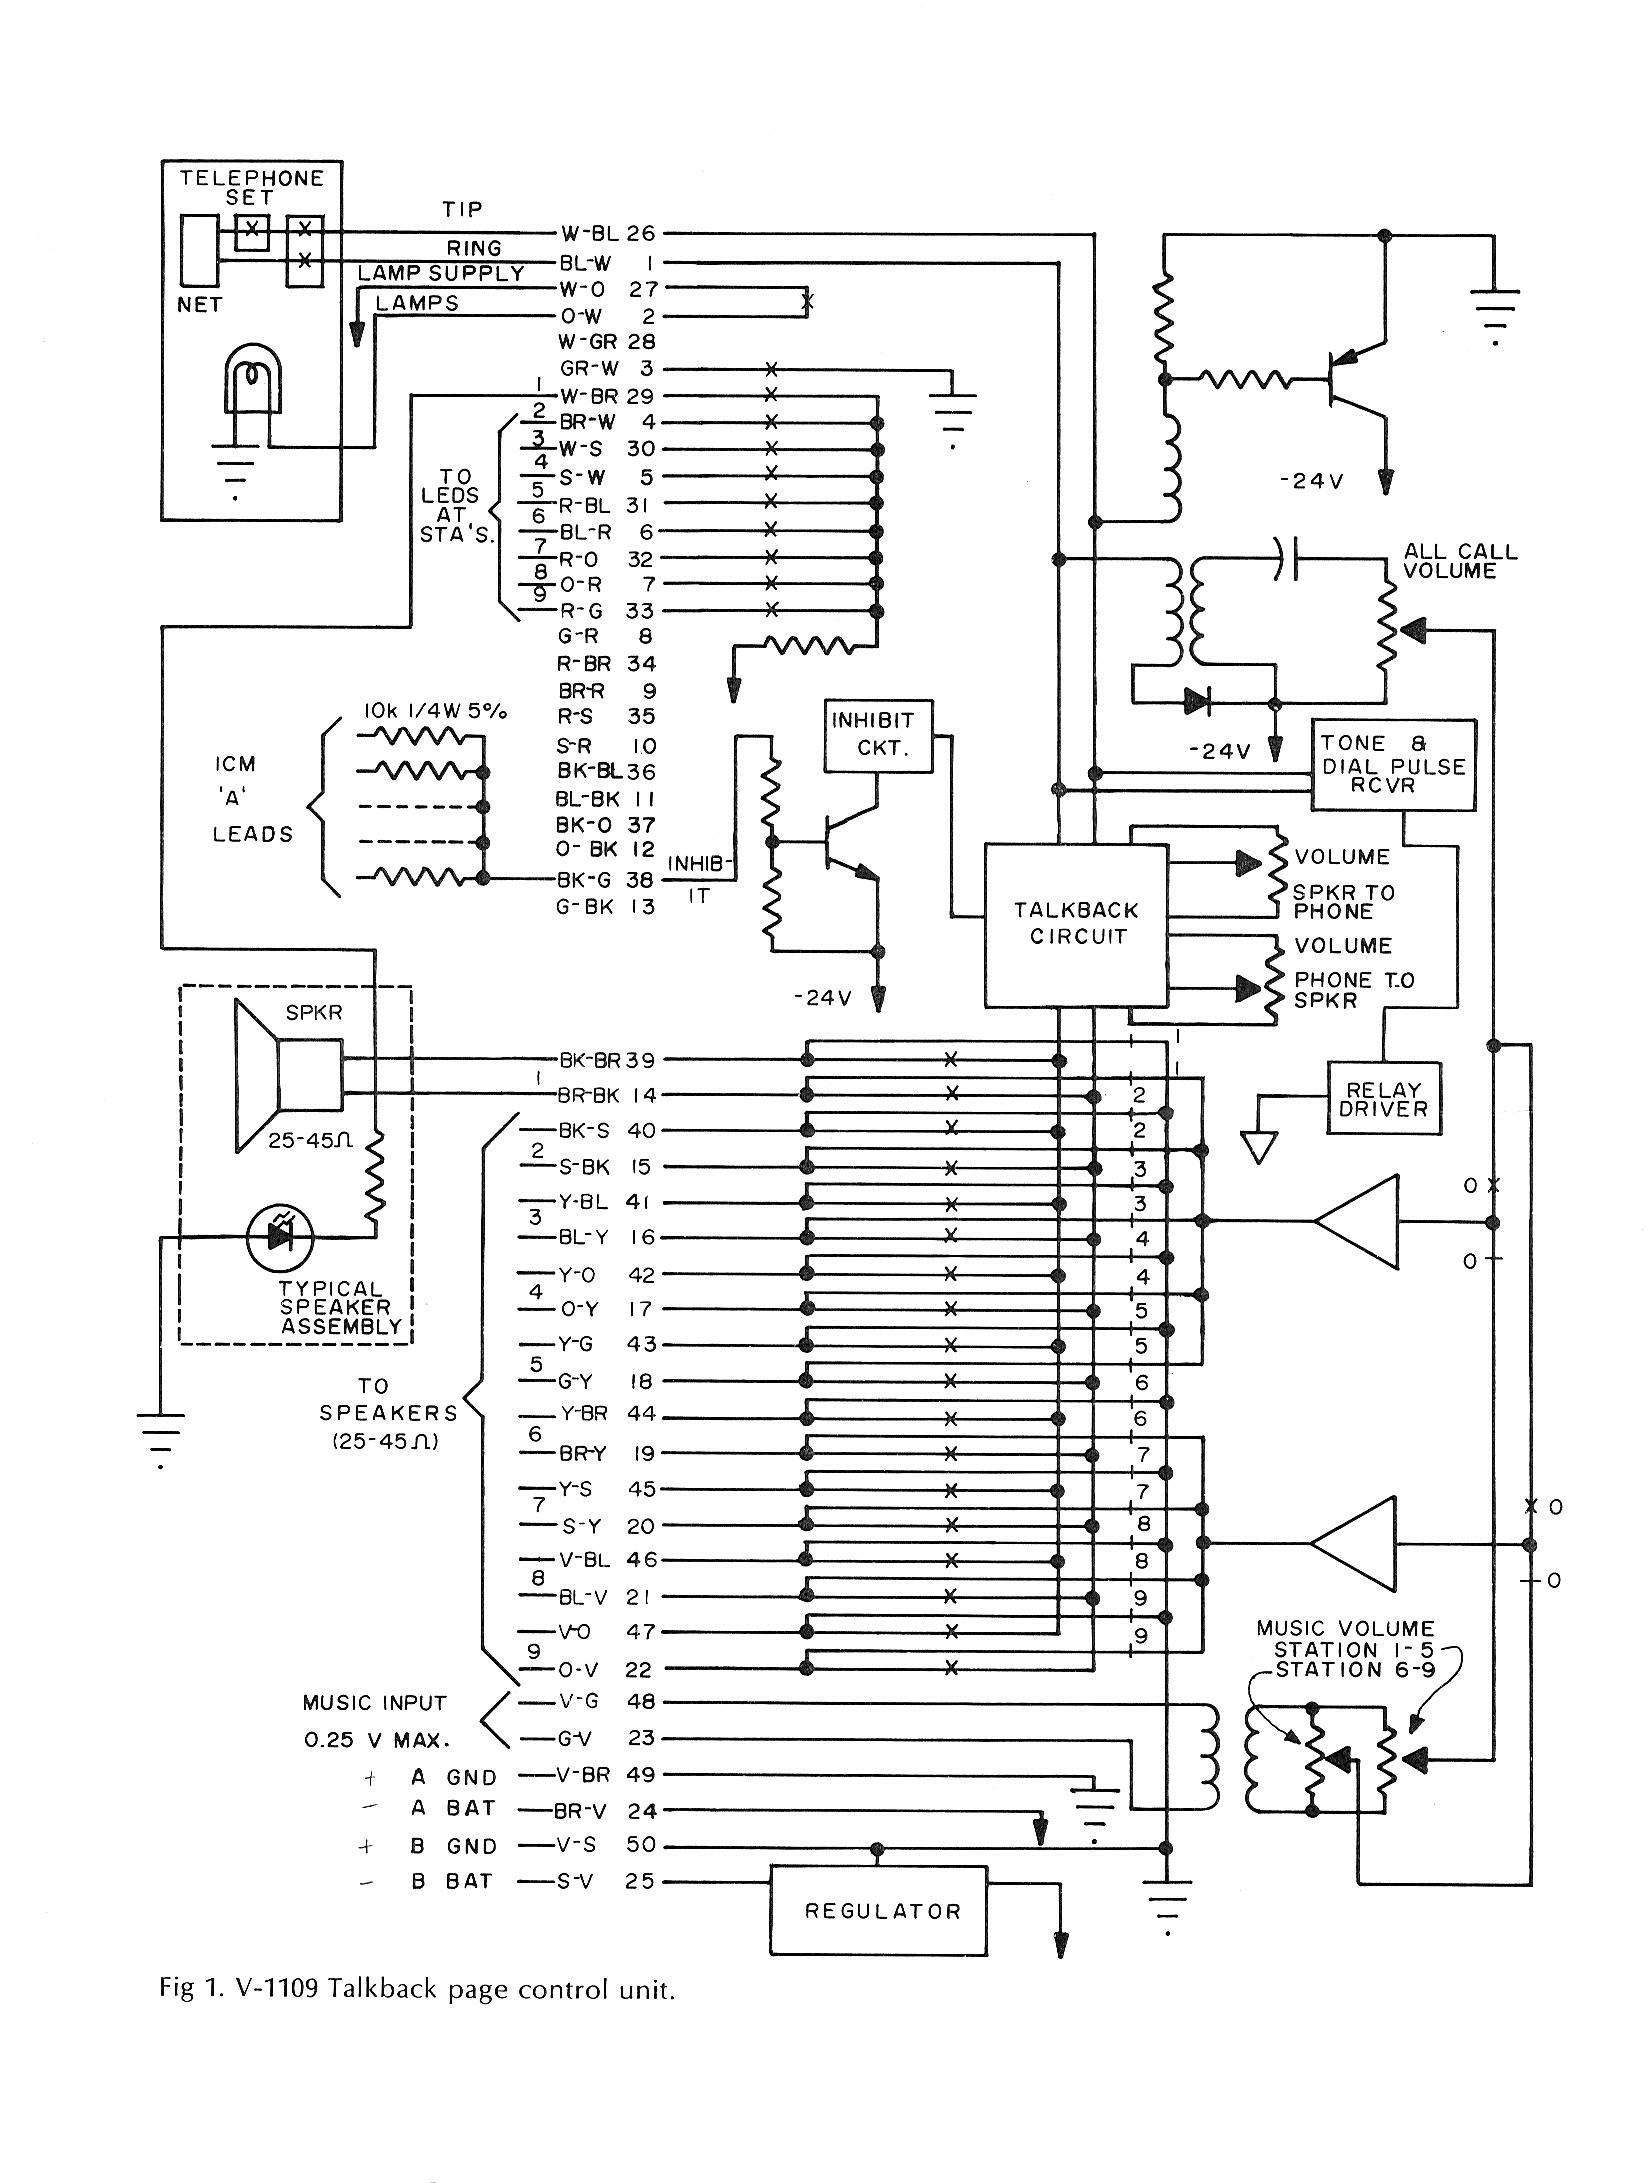 valcom1109 telephone technical references aiphone lef 3l wiring diagram at virtualis.co